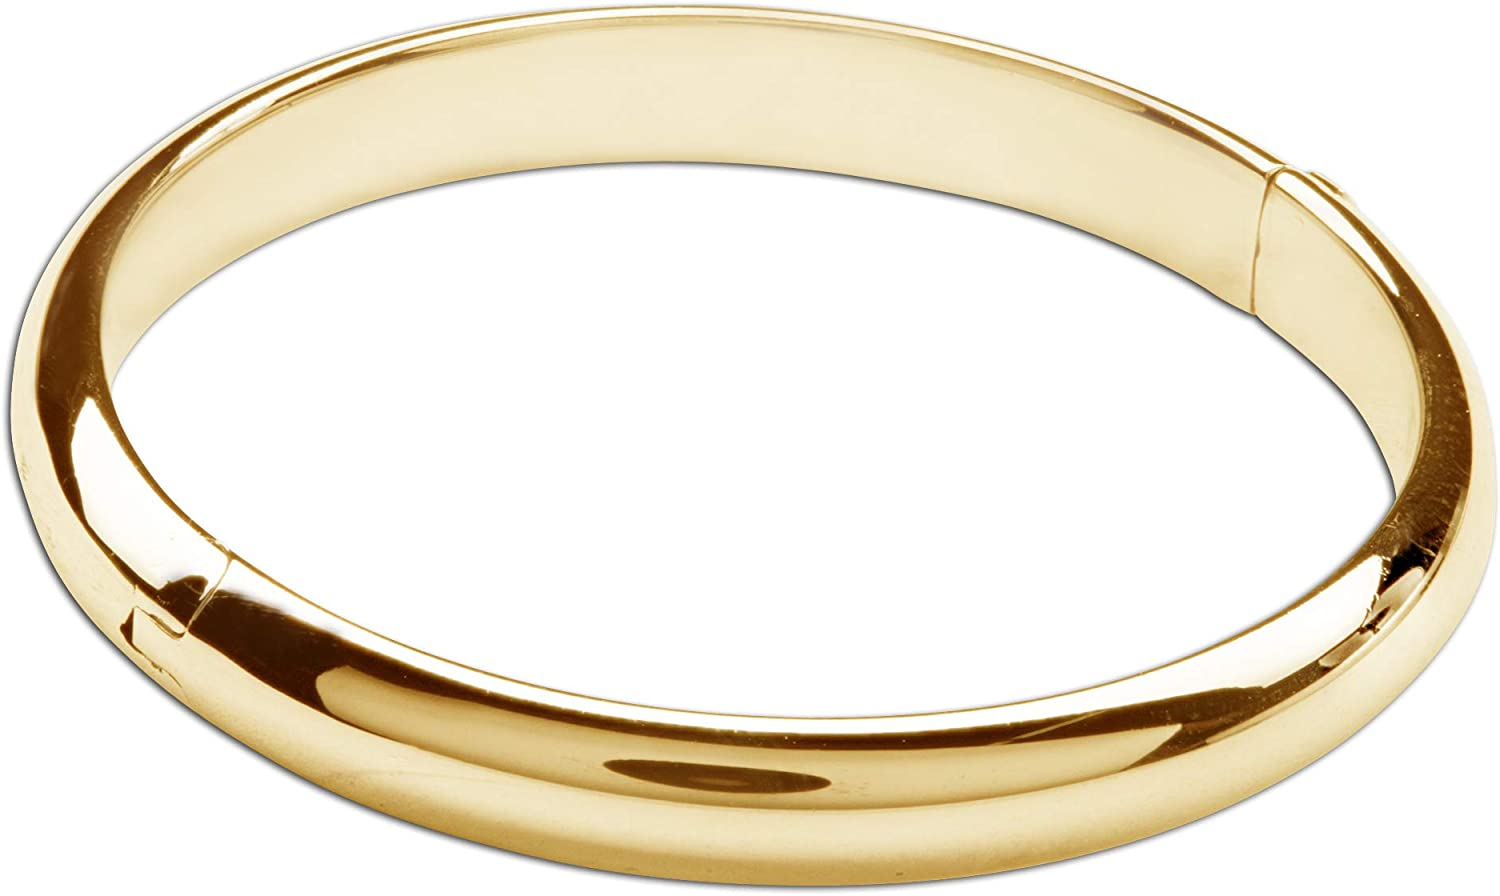 Children's 14K Gold-Plated or Sterling Silver Classic Baby Bangle Bracelet